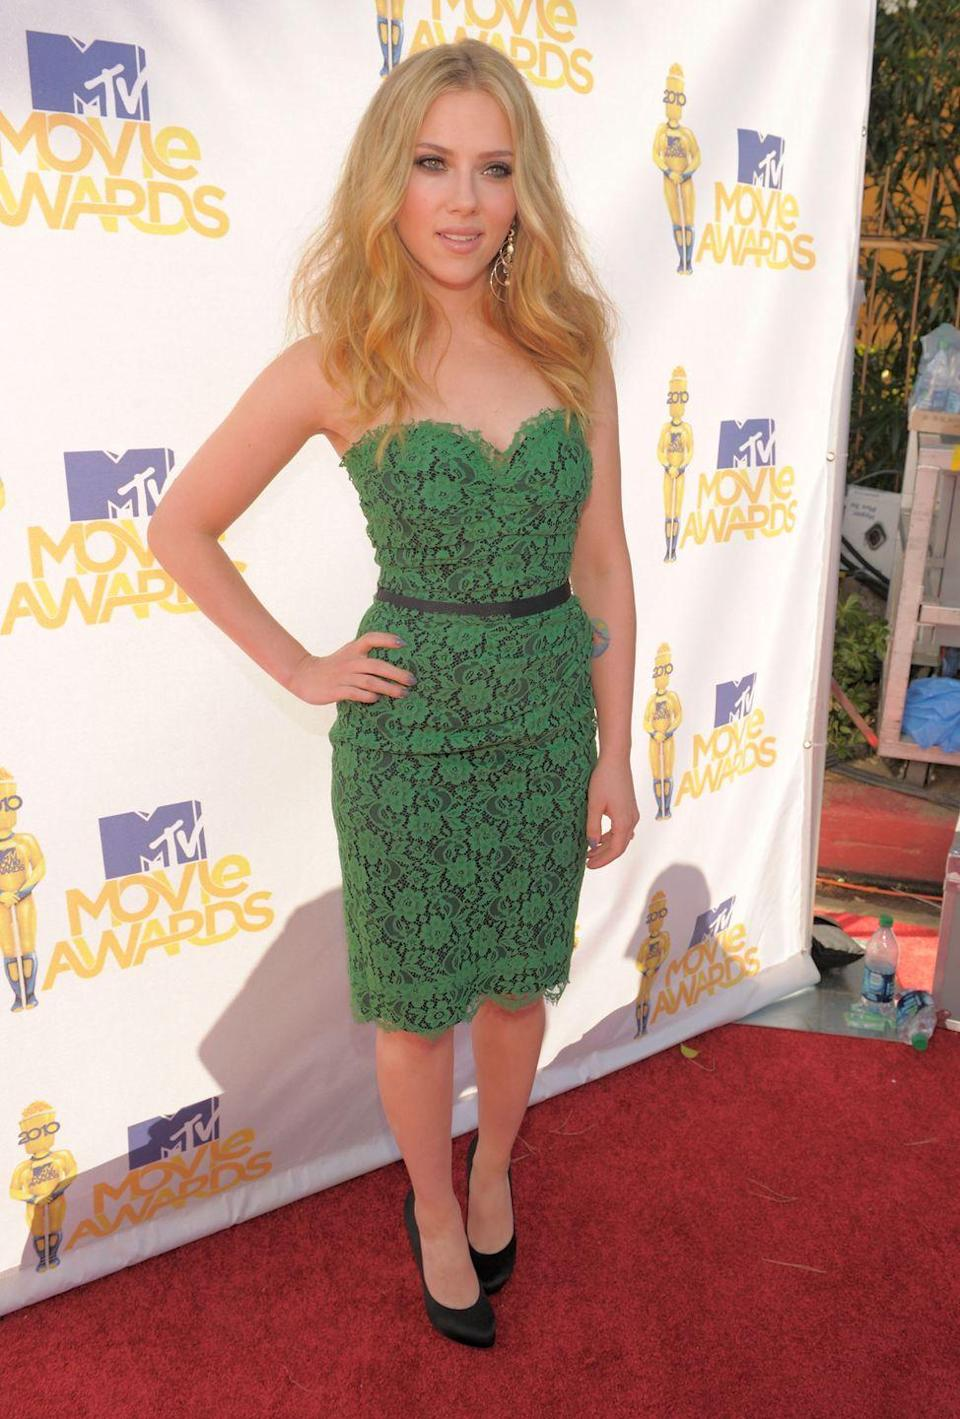 <p>The 2010s will forever be known as the decade in which the body-con dress refused to die. There were the more fashion-forward ways to wear it (see Scarlett Johansson at the MTV Movie Awards in 2010), and then, of course, there was the classic Hervé Léger bandage dress.</p>